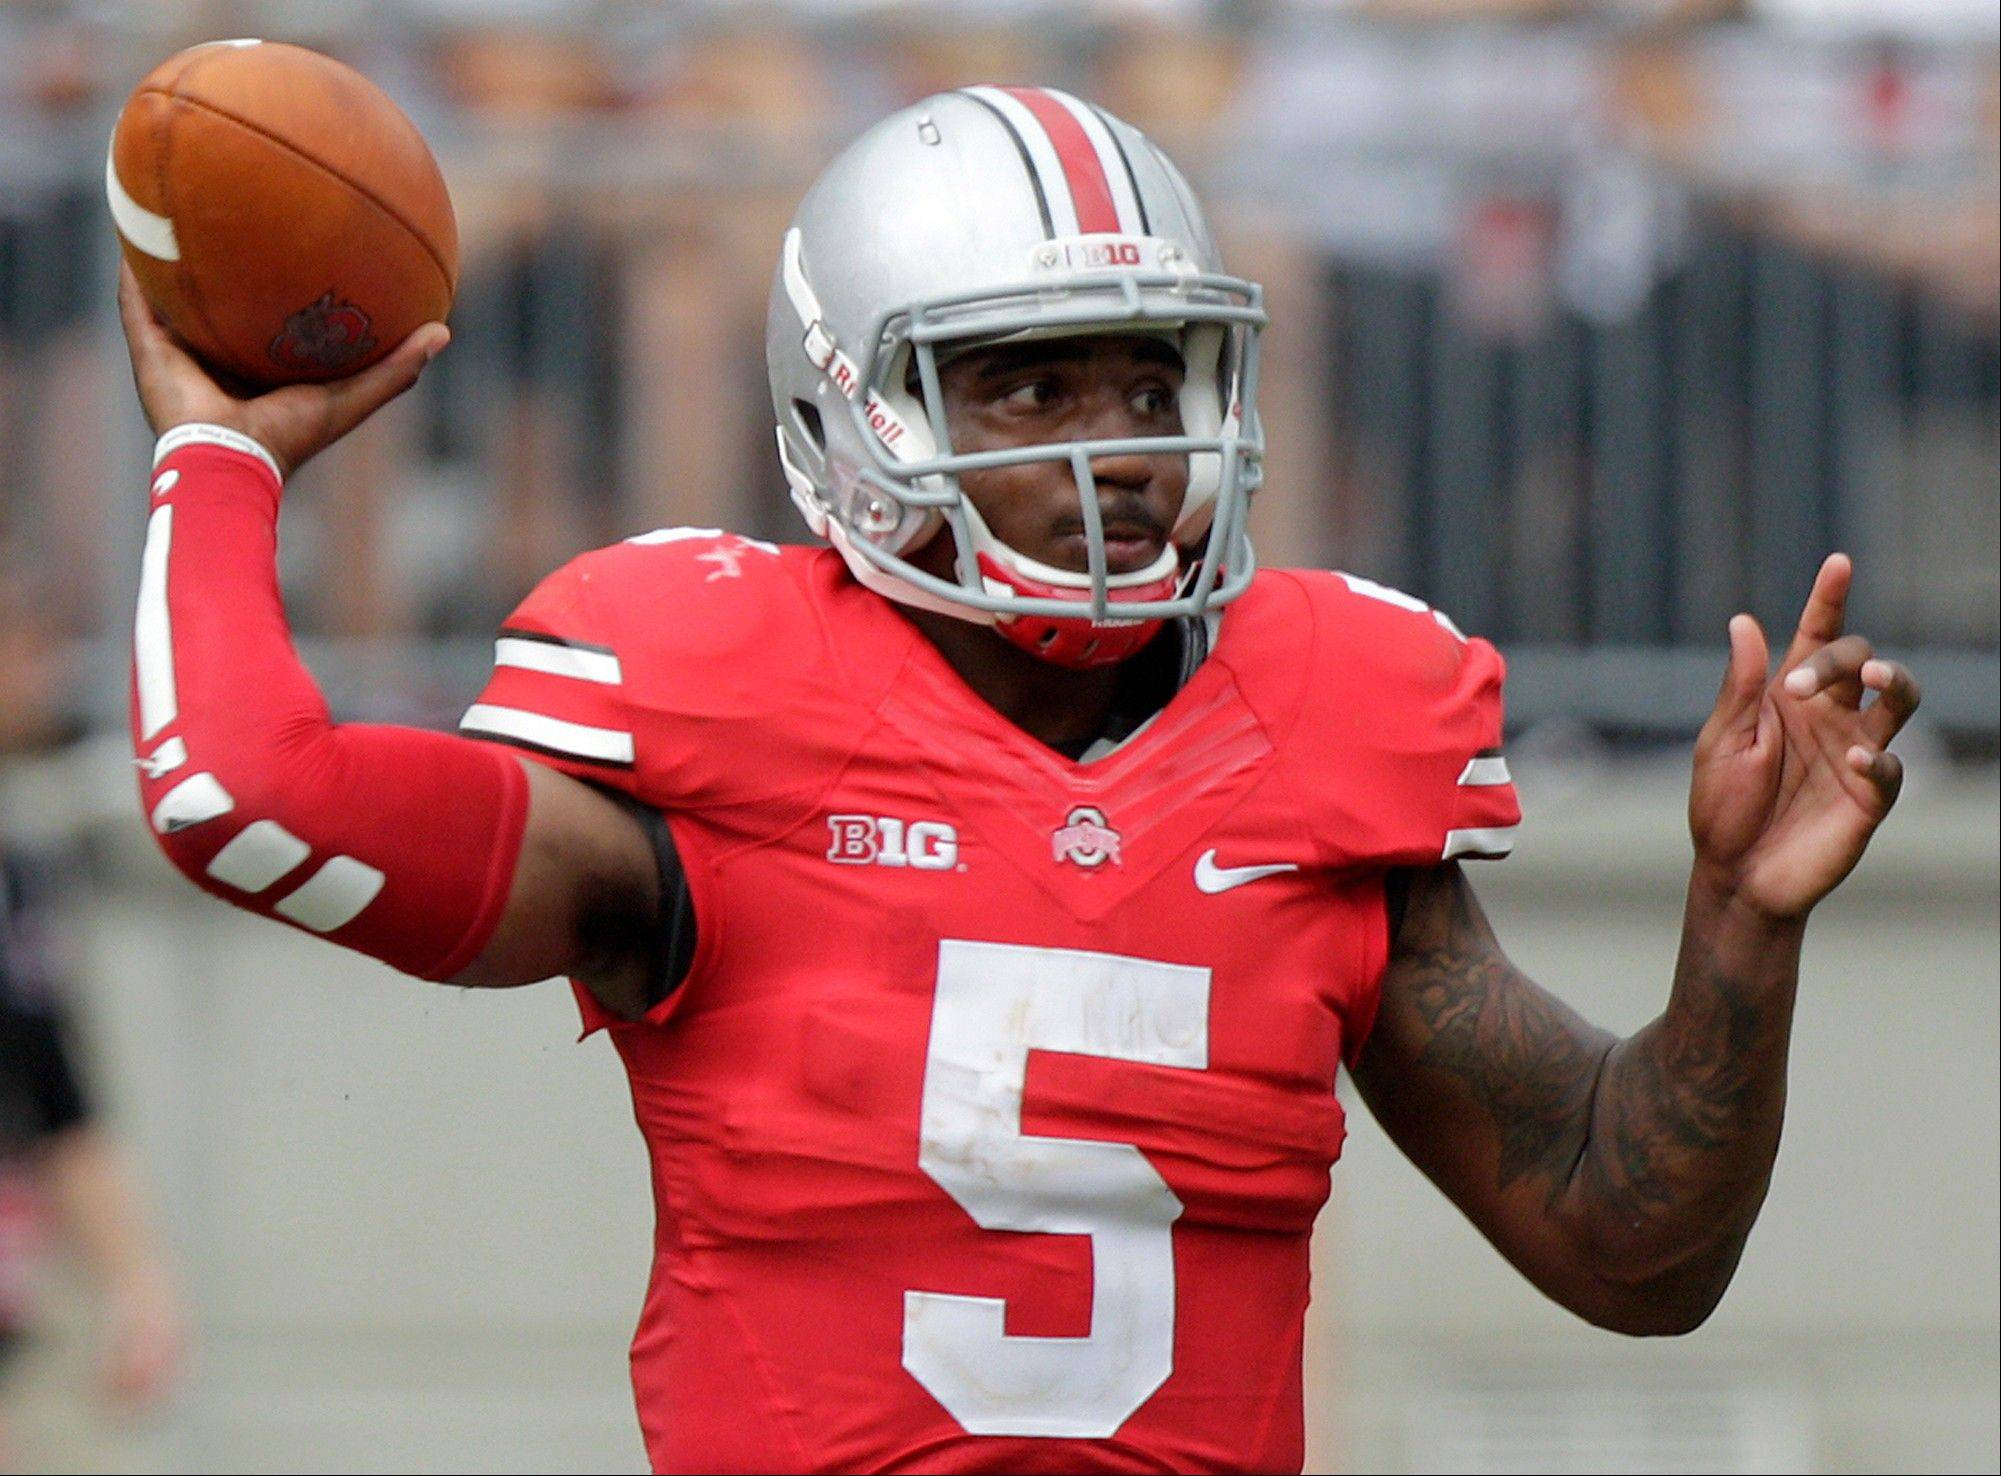 Ohio State quarterback Braxton Miller throws a pass against Buffalo. Miller is expected to start for the Buckeyes at No. 16 Northwestern this Saturday.